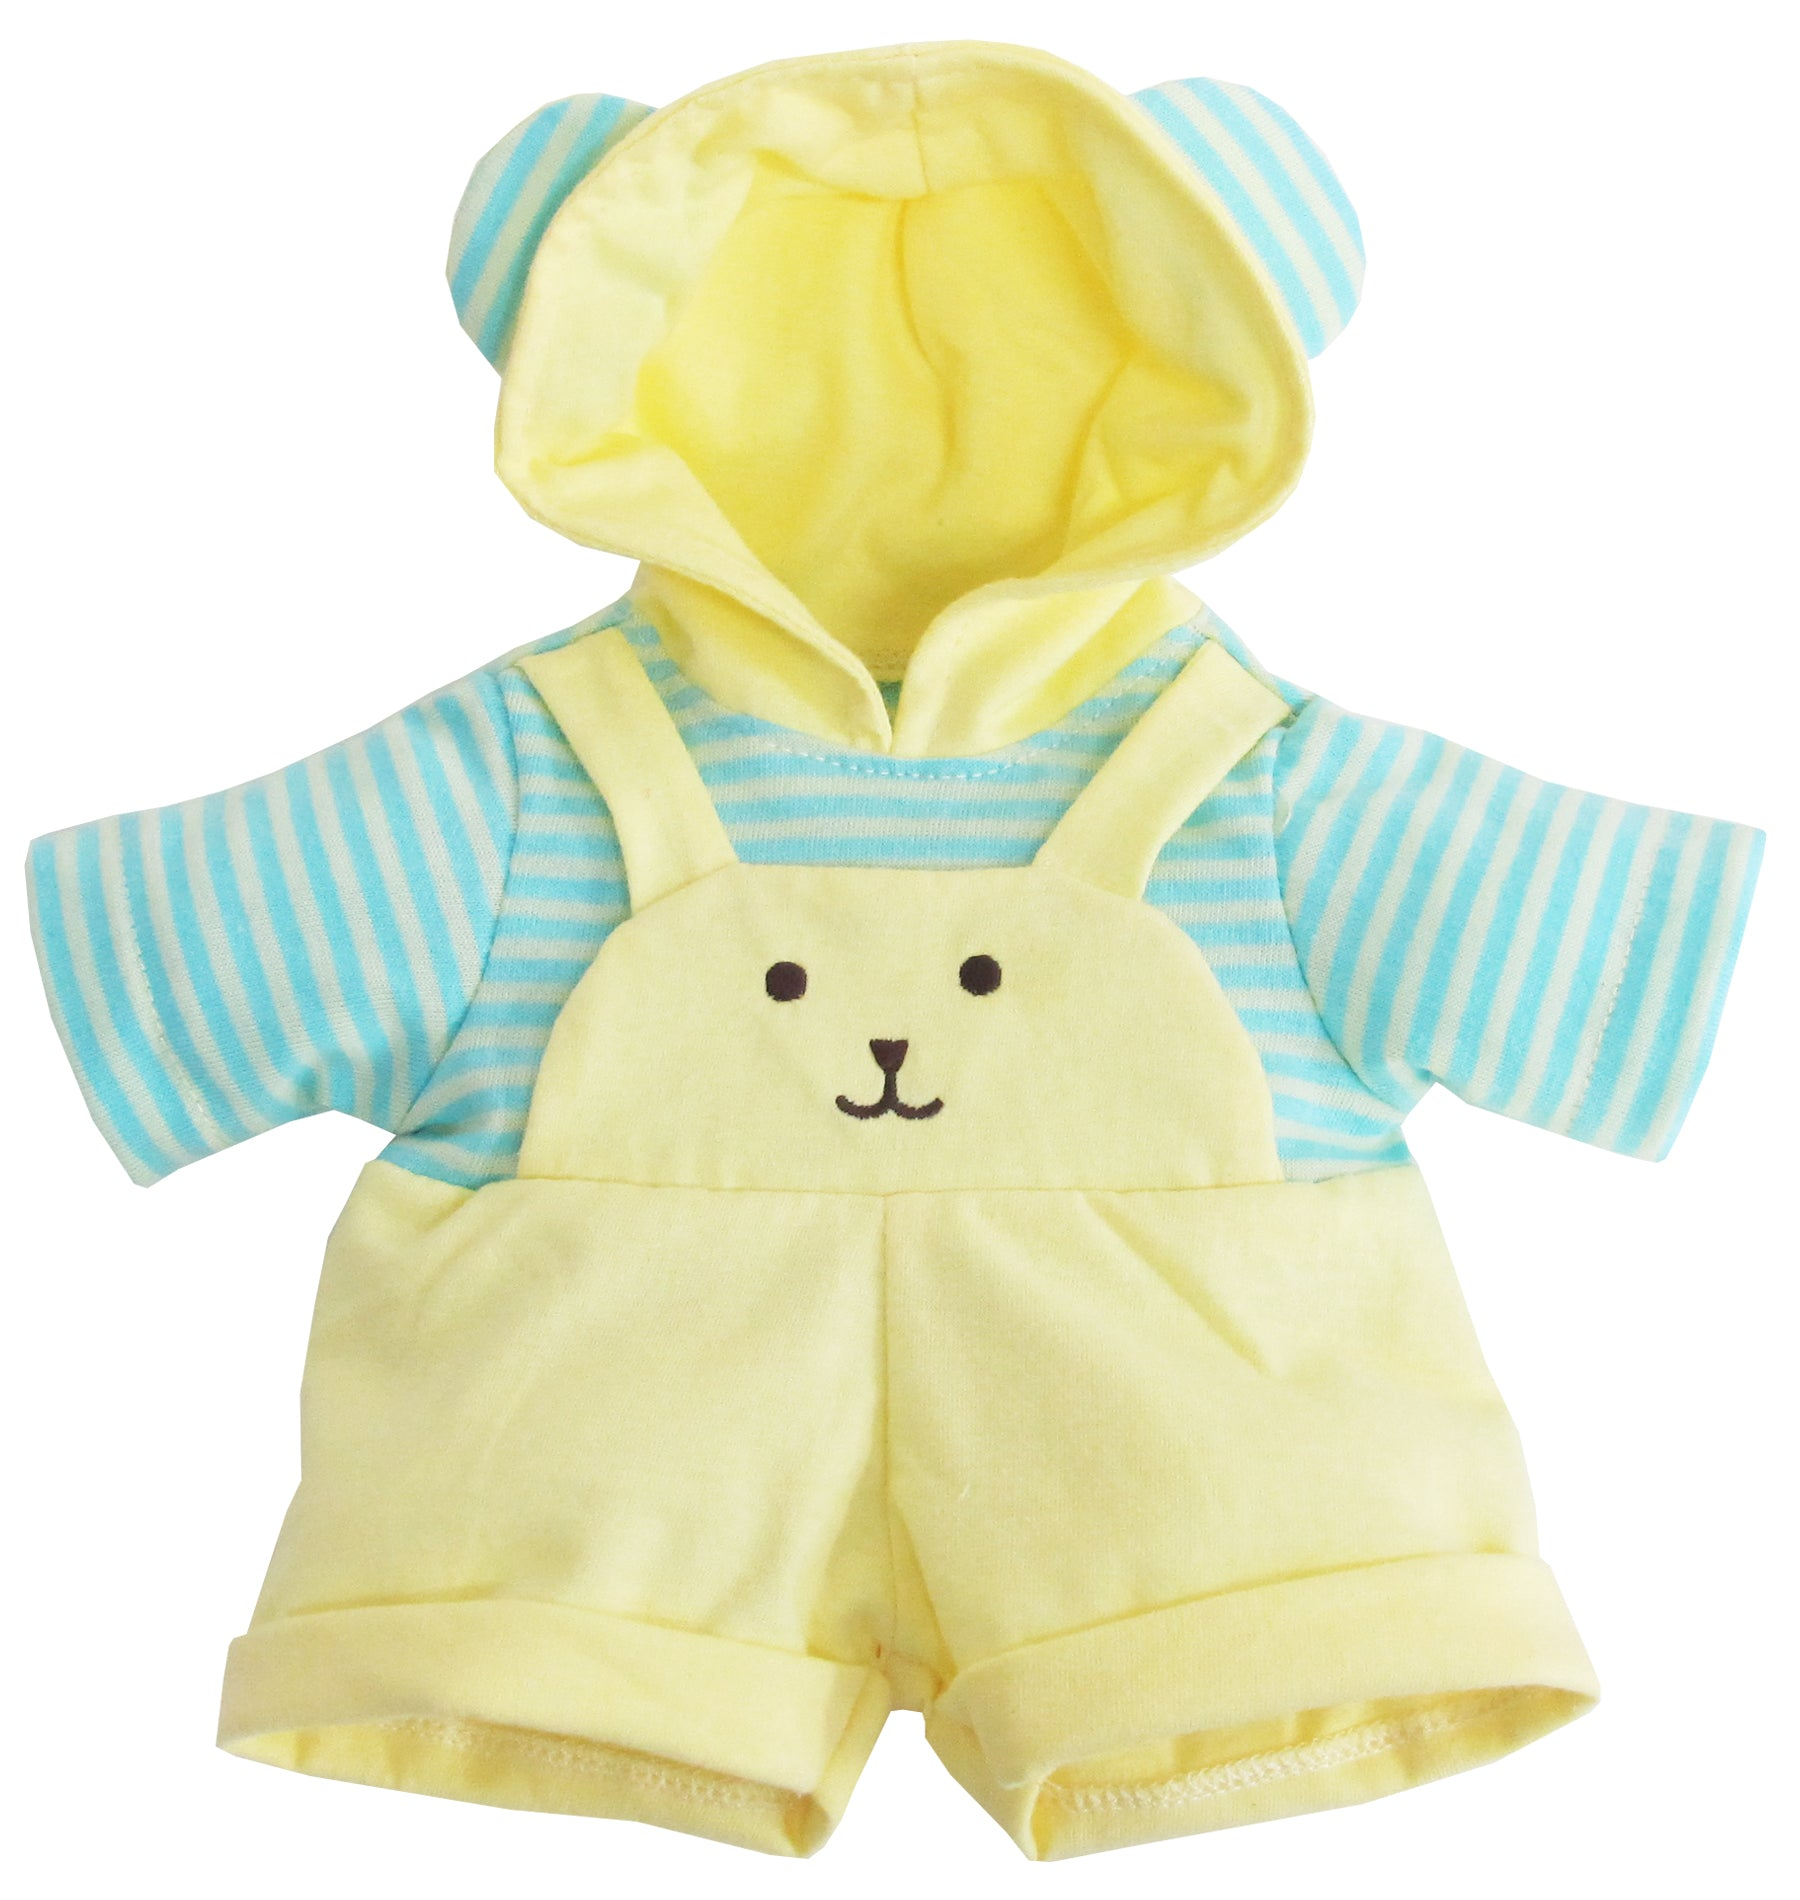 DUNGAREES WITH HOOD 14""